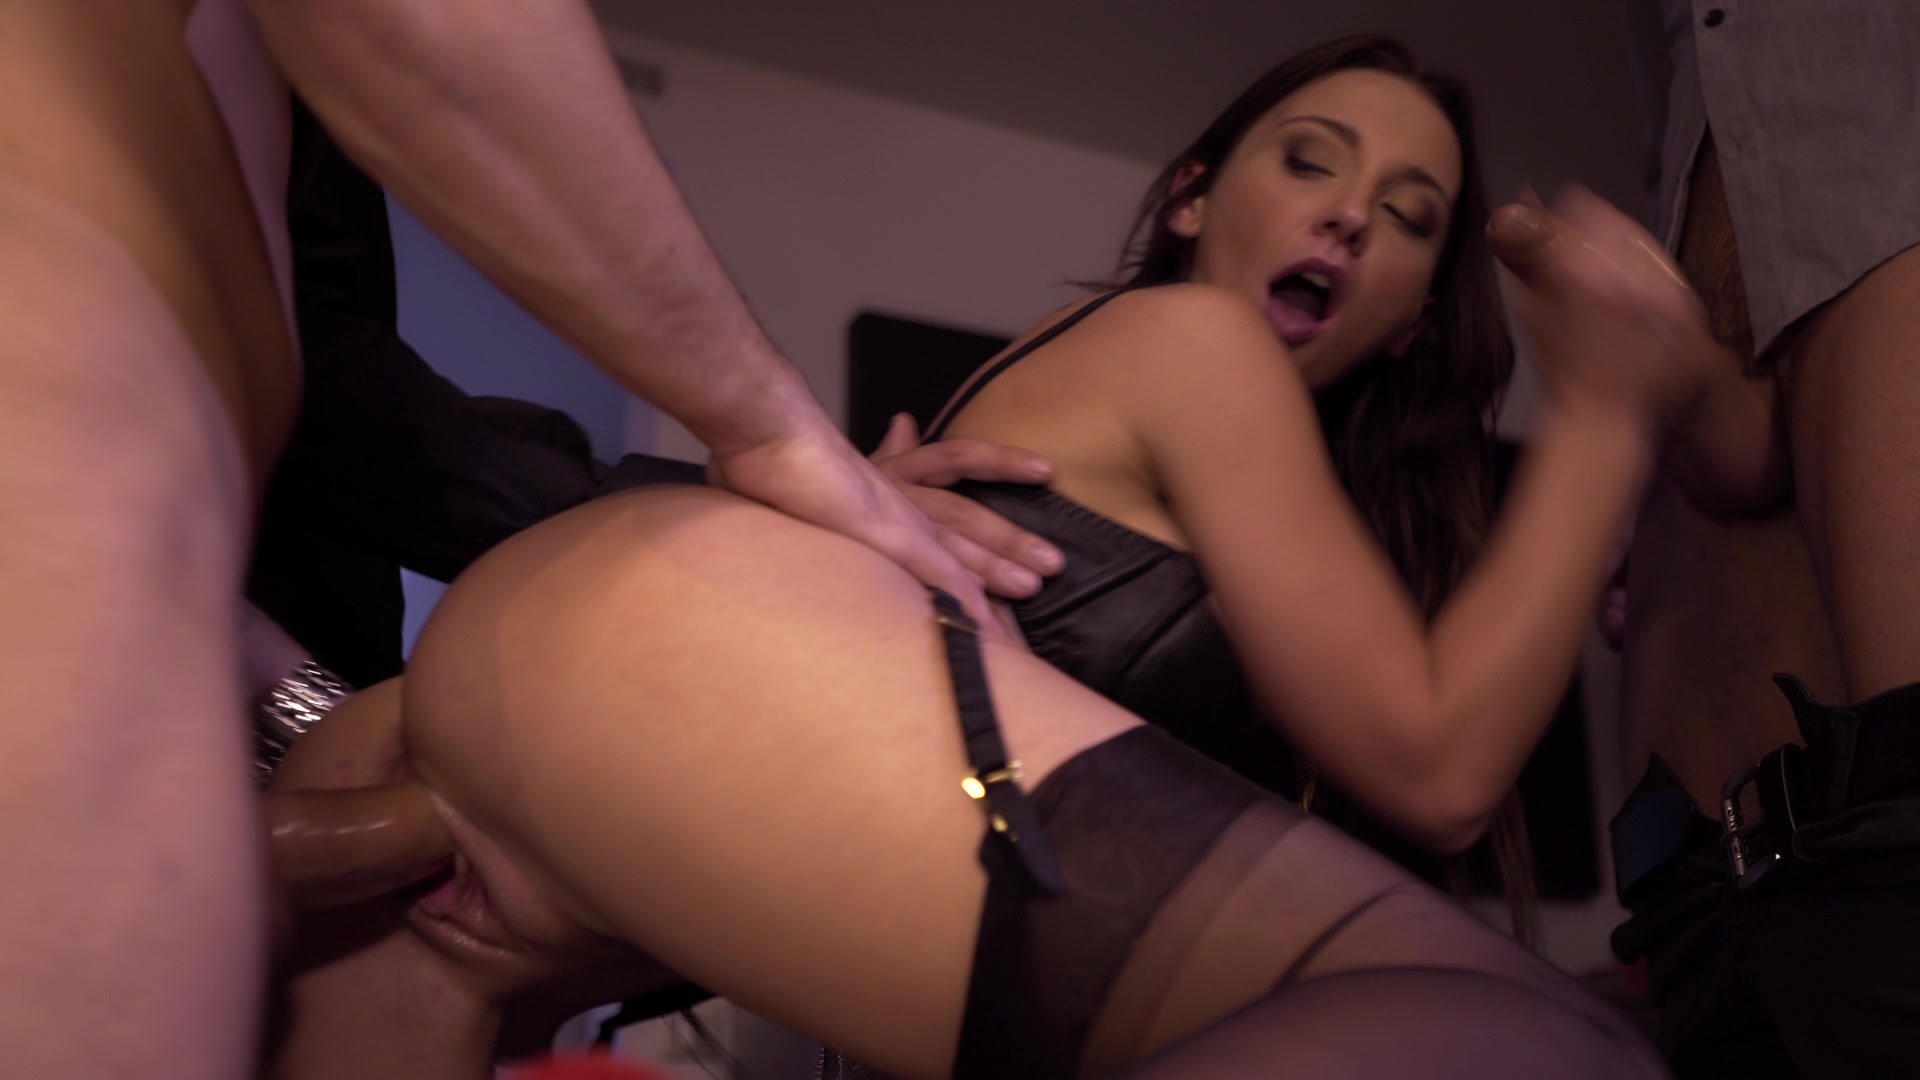 Scene with Julie Skyhigh - image 12 out of 20